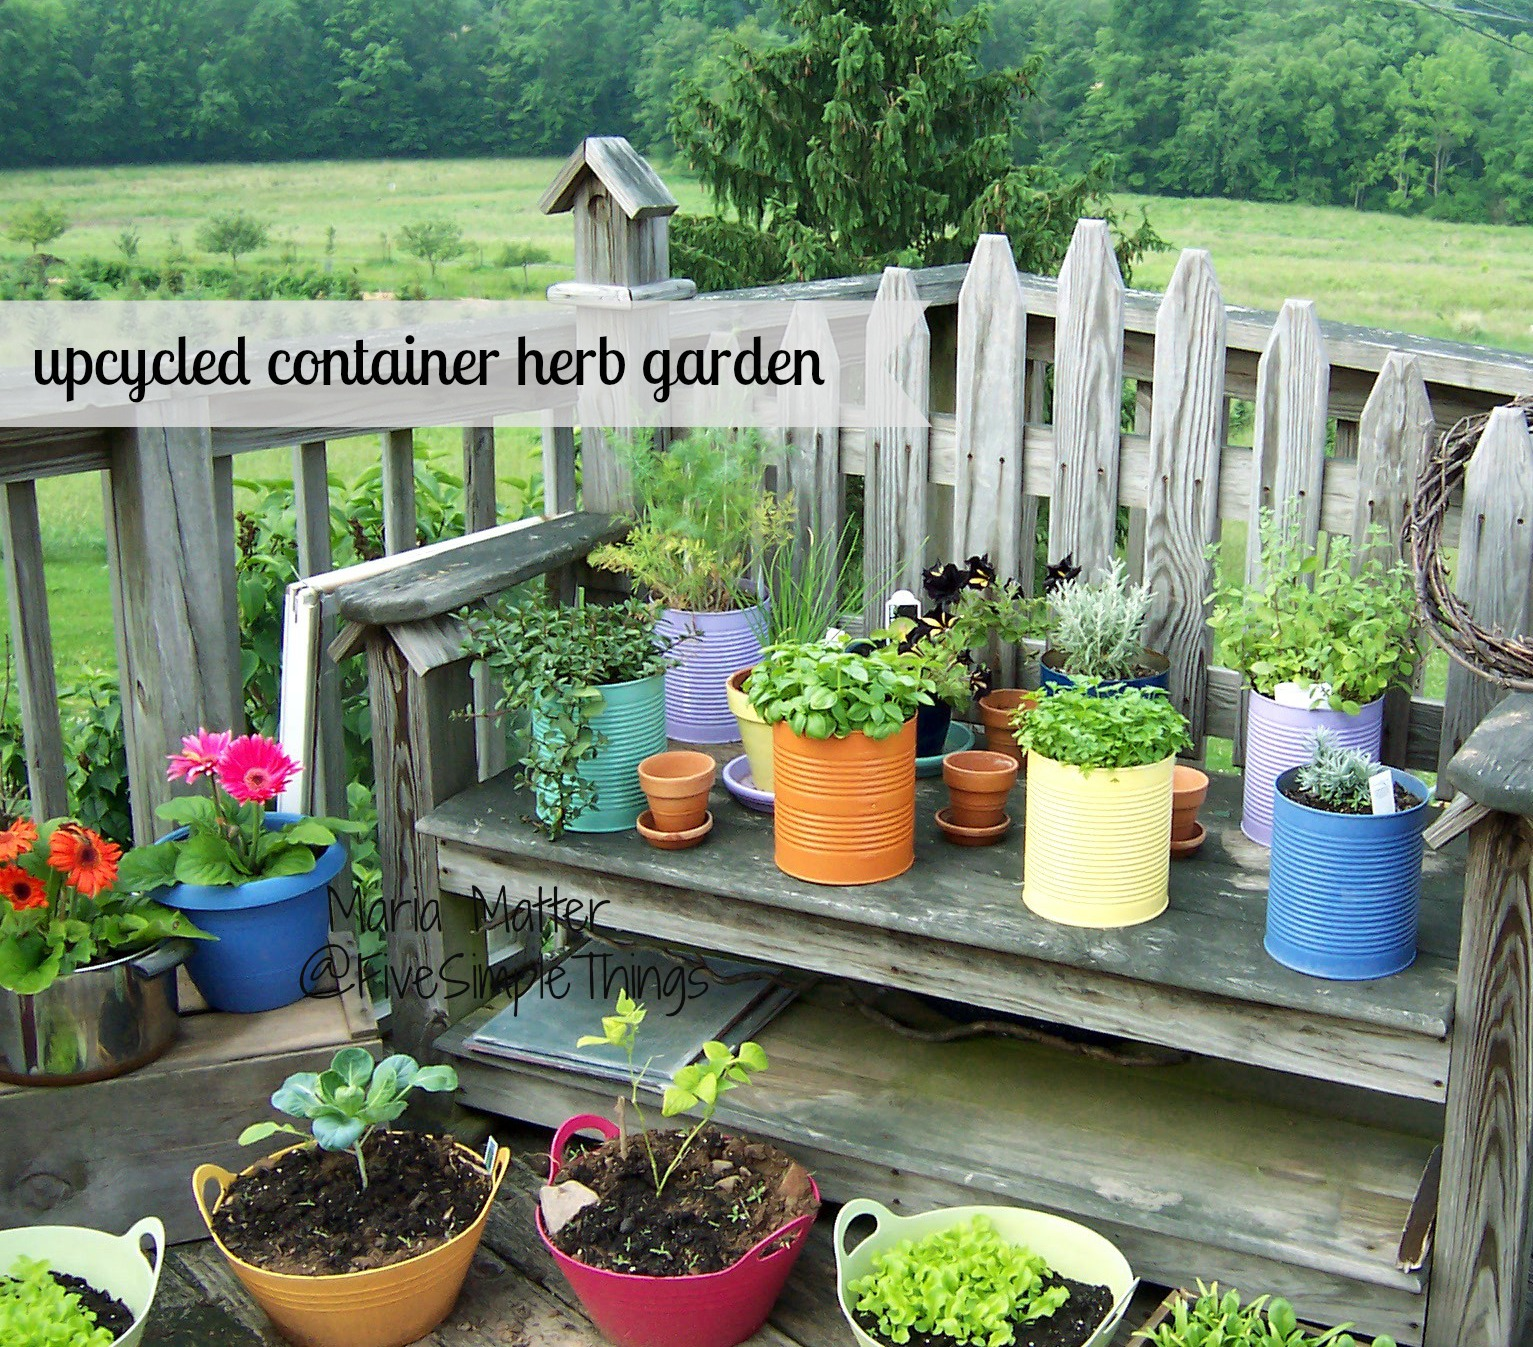 Five simple things upcycled container herb garden herbs 101 for Container herb garden